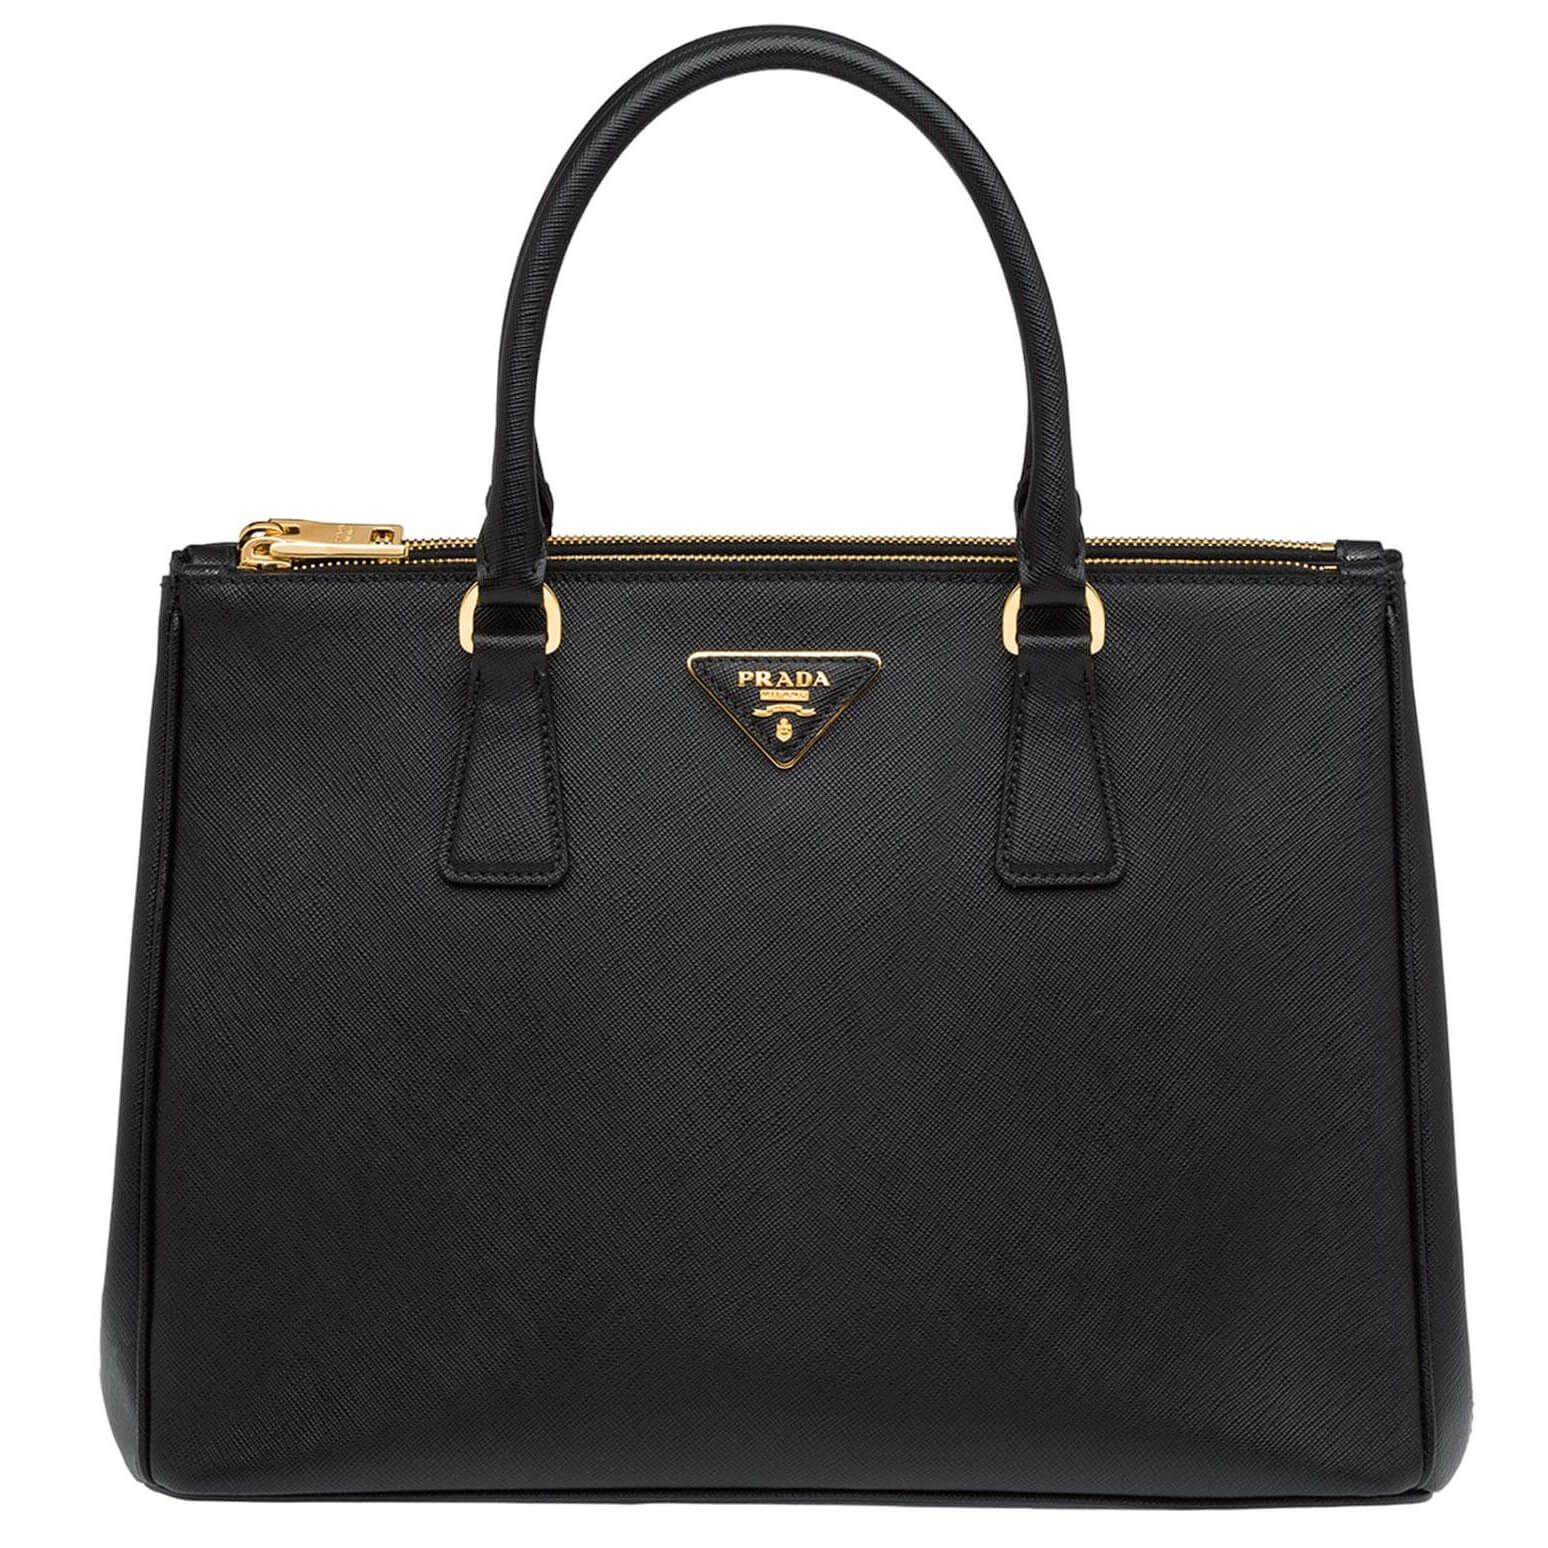 image of prada galleria handbag